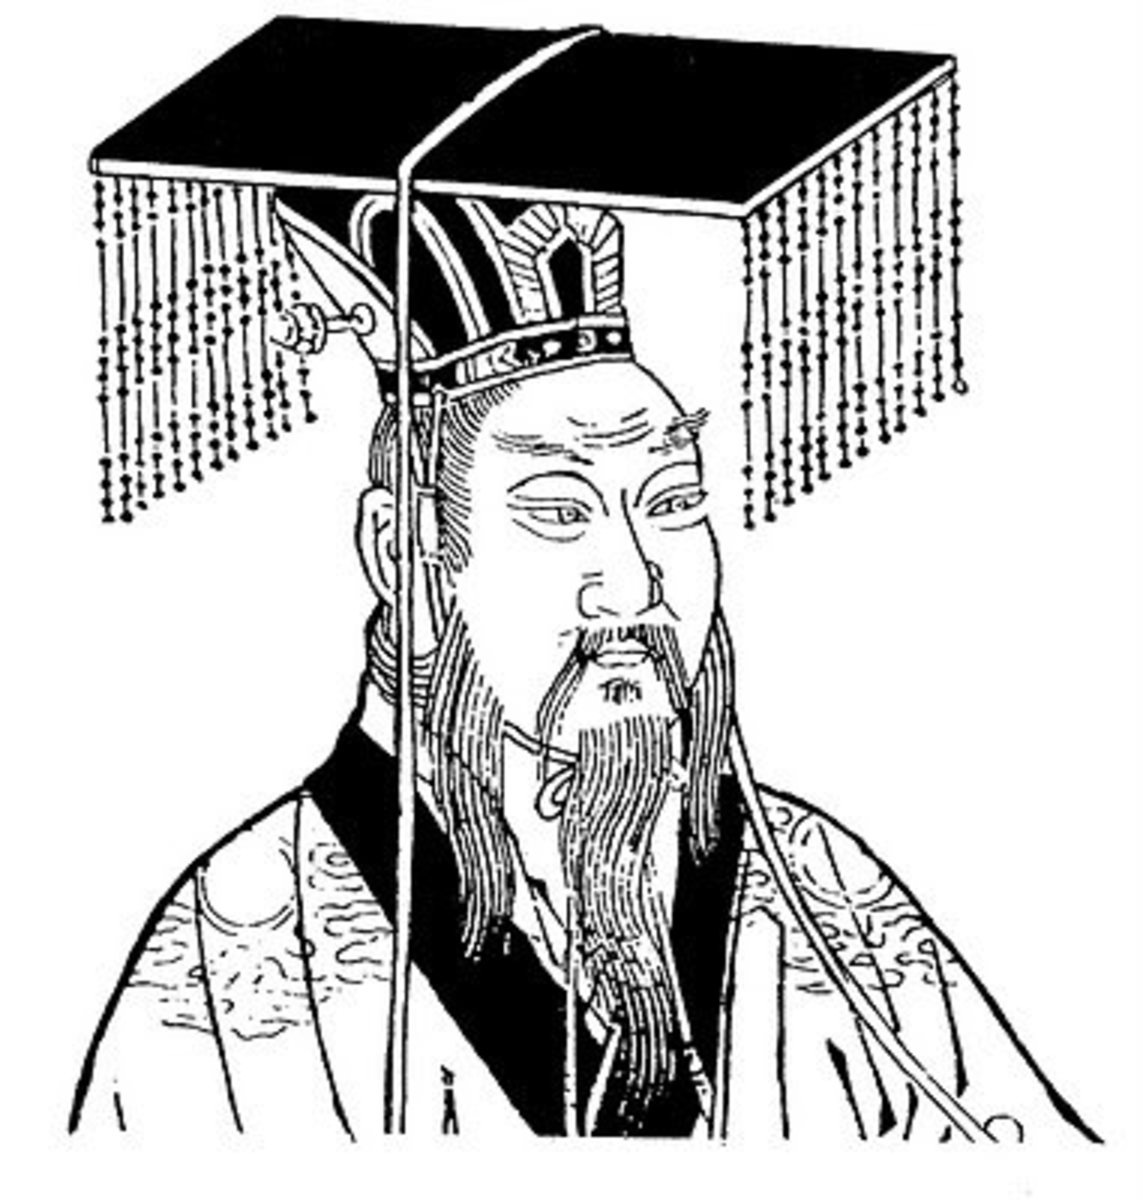 sui-wen-ti-or-yang-chien-an-ancient-emperor-of-china-and-why-he-matters-to-us-today